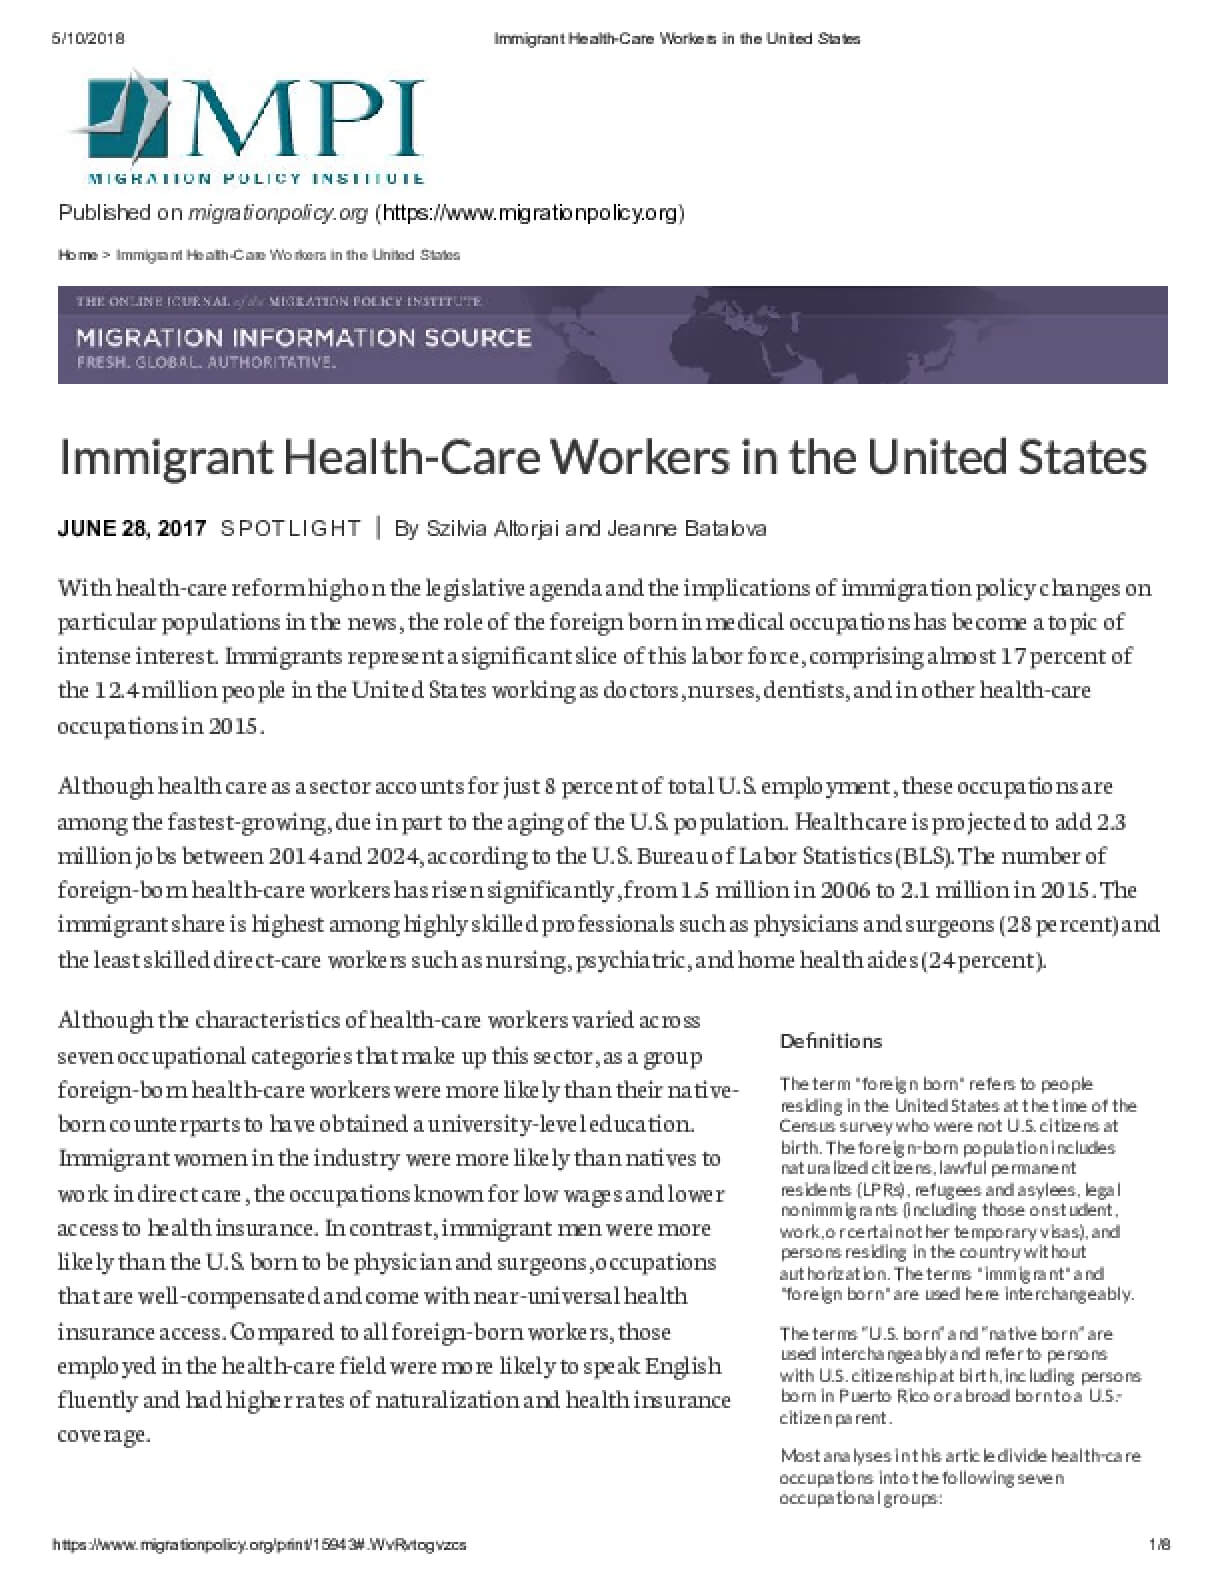 Immigrant Health-Care Workers in the United States